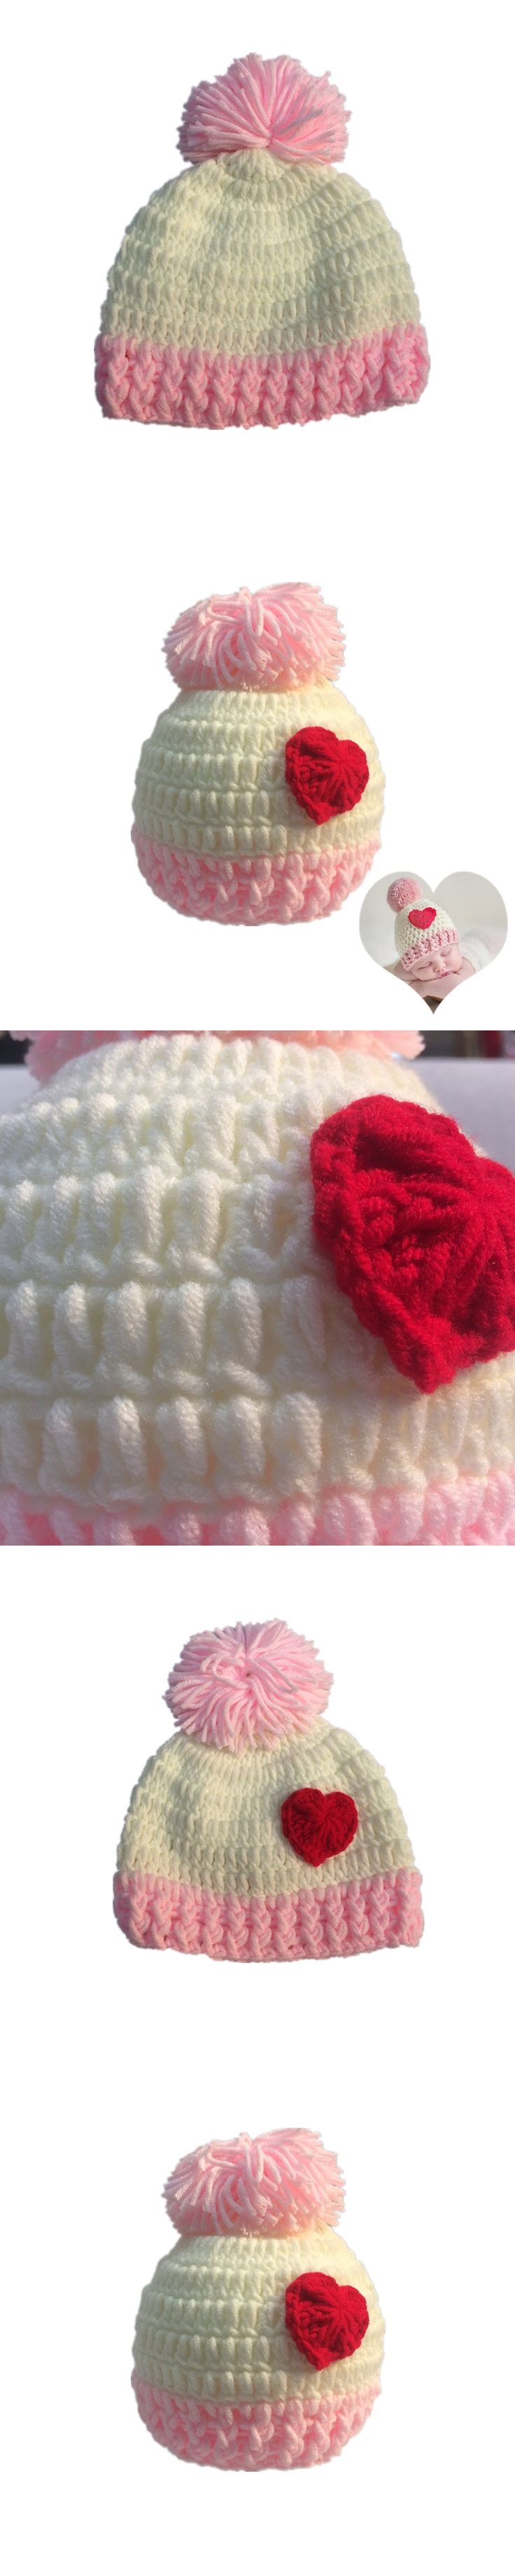 Free shipping of neonatal hand woven beauty s wool hat qiu dong baby photographed fashion hat